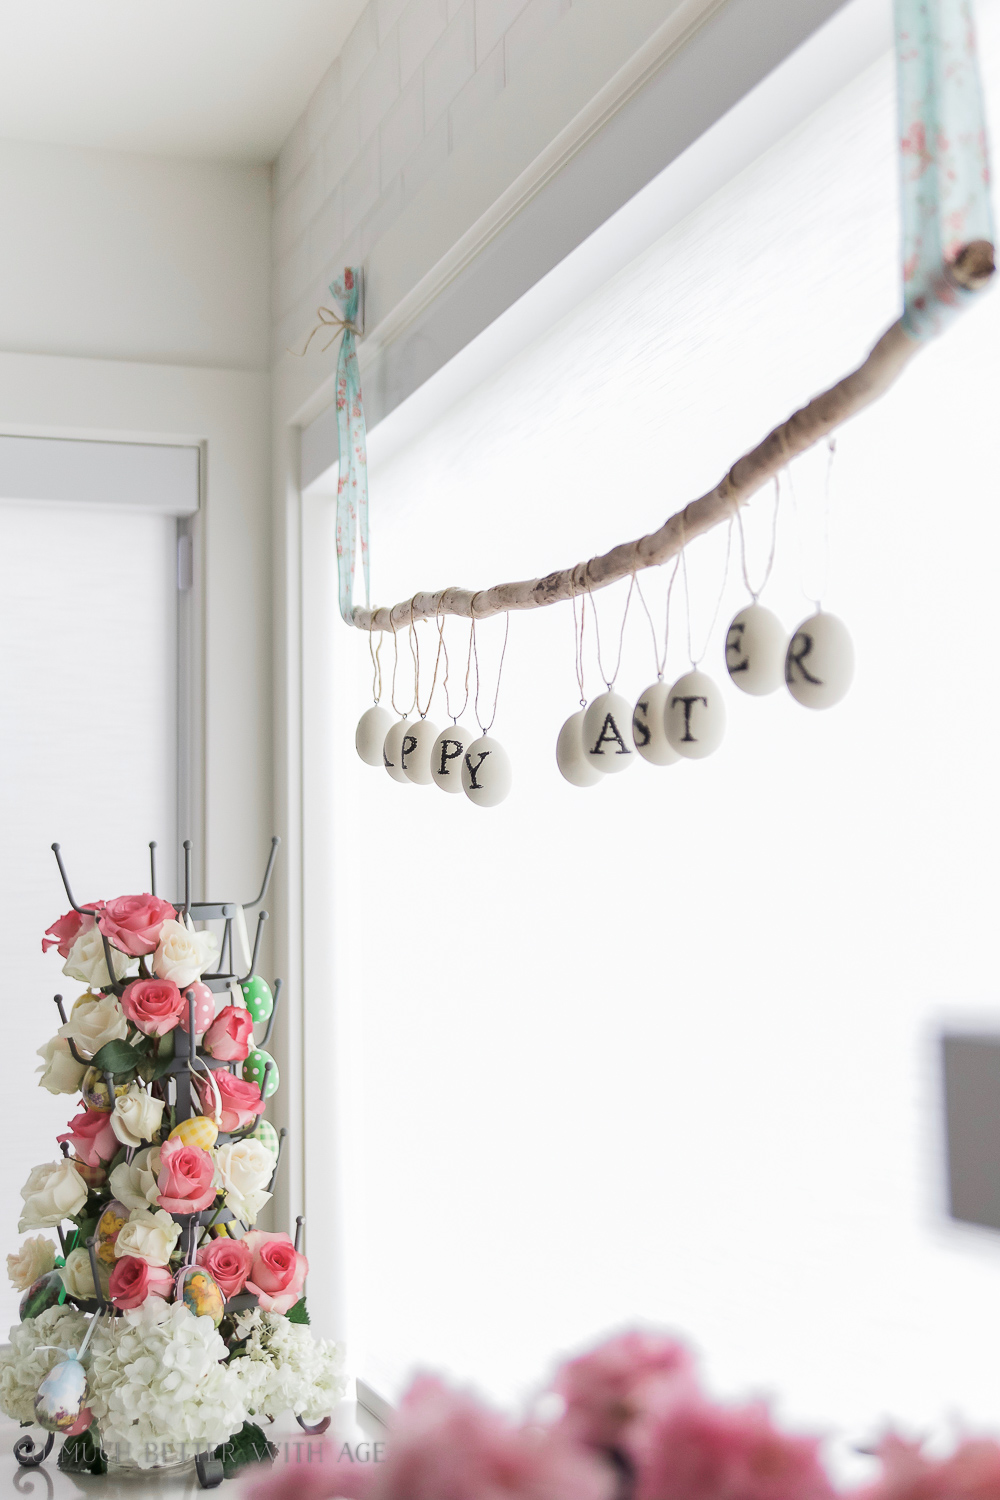 Easter Egg Stick Garland/spring decor in the kitchen - So Much Better With Age